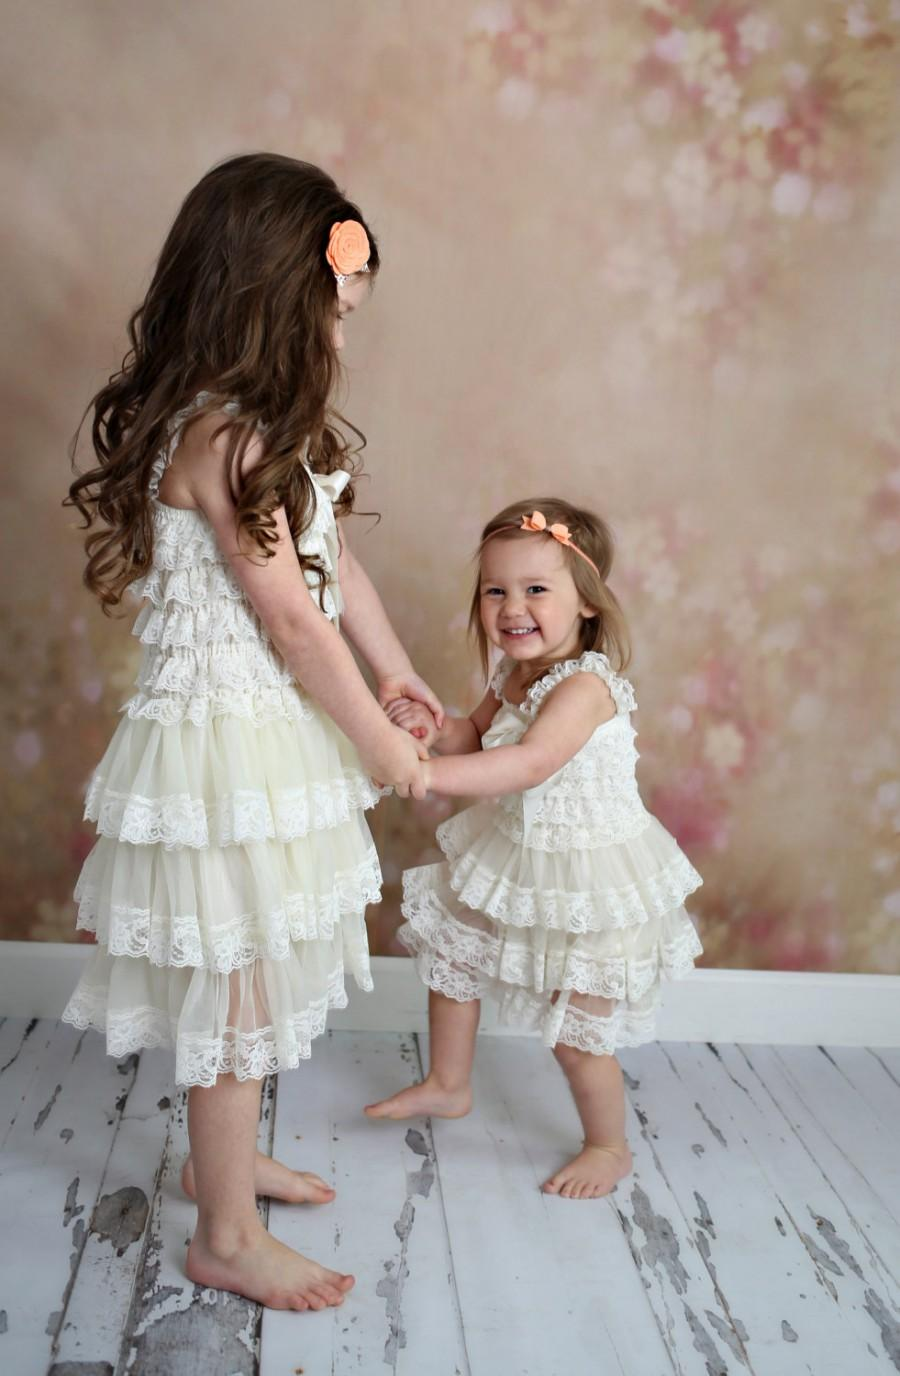 Magnificent wedding dresses toddlers festooning wedding dress pink vintage lace dresses for toddlers dress images izmirmasajfo